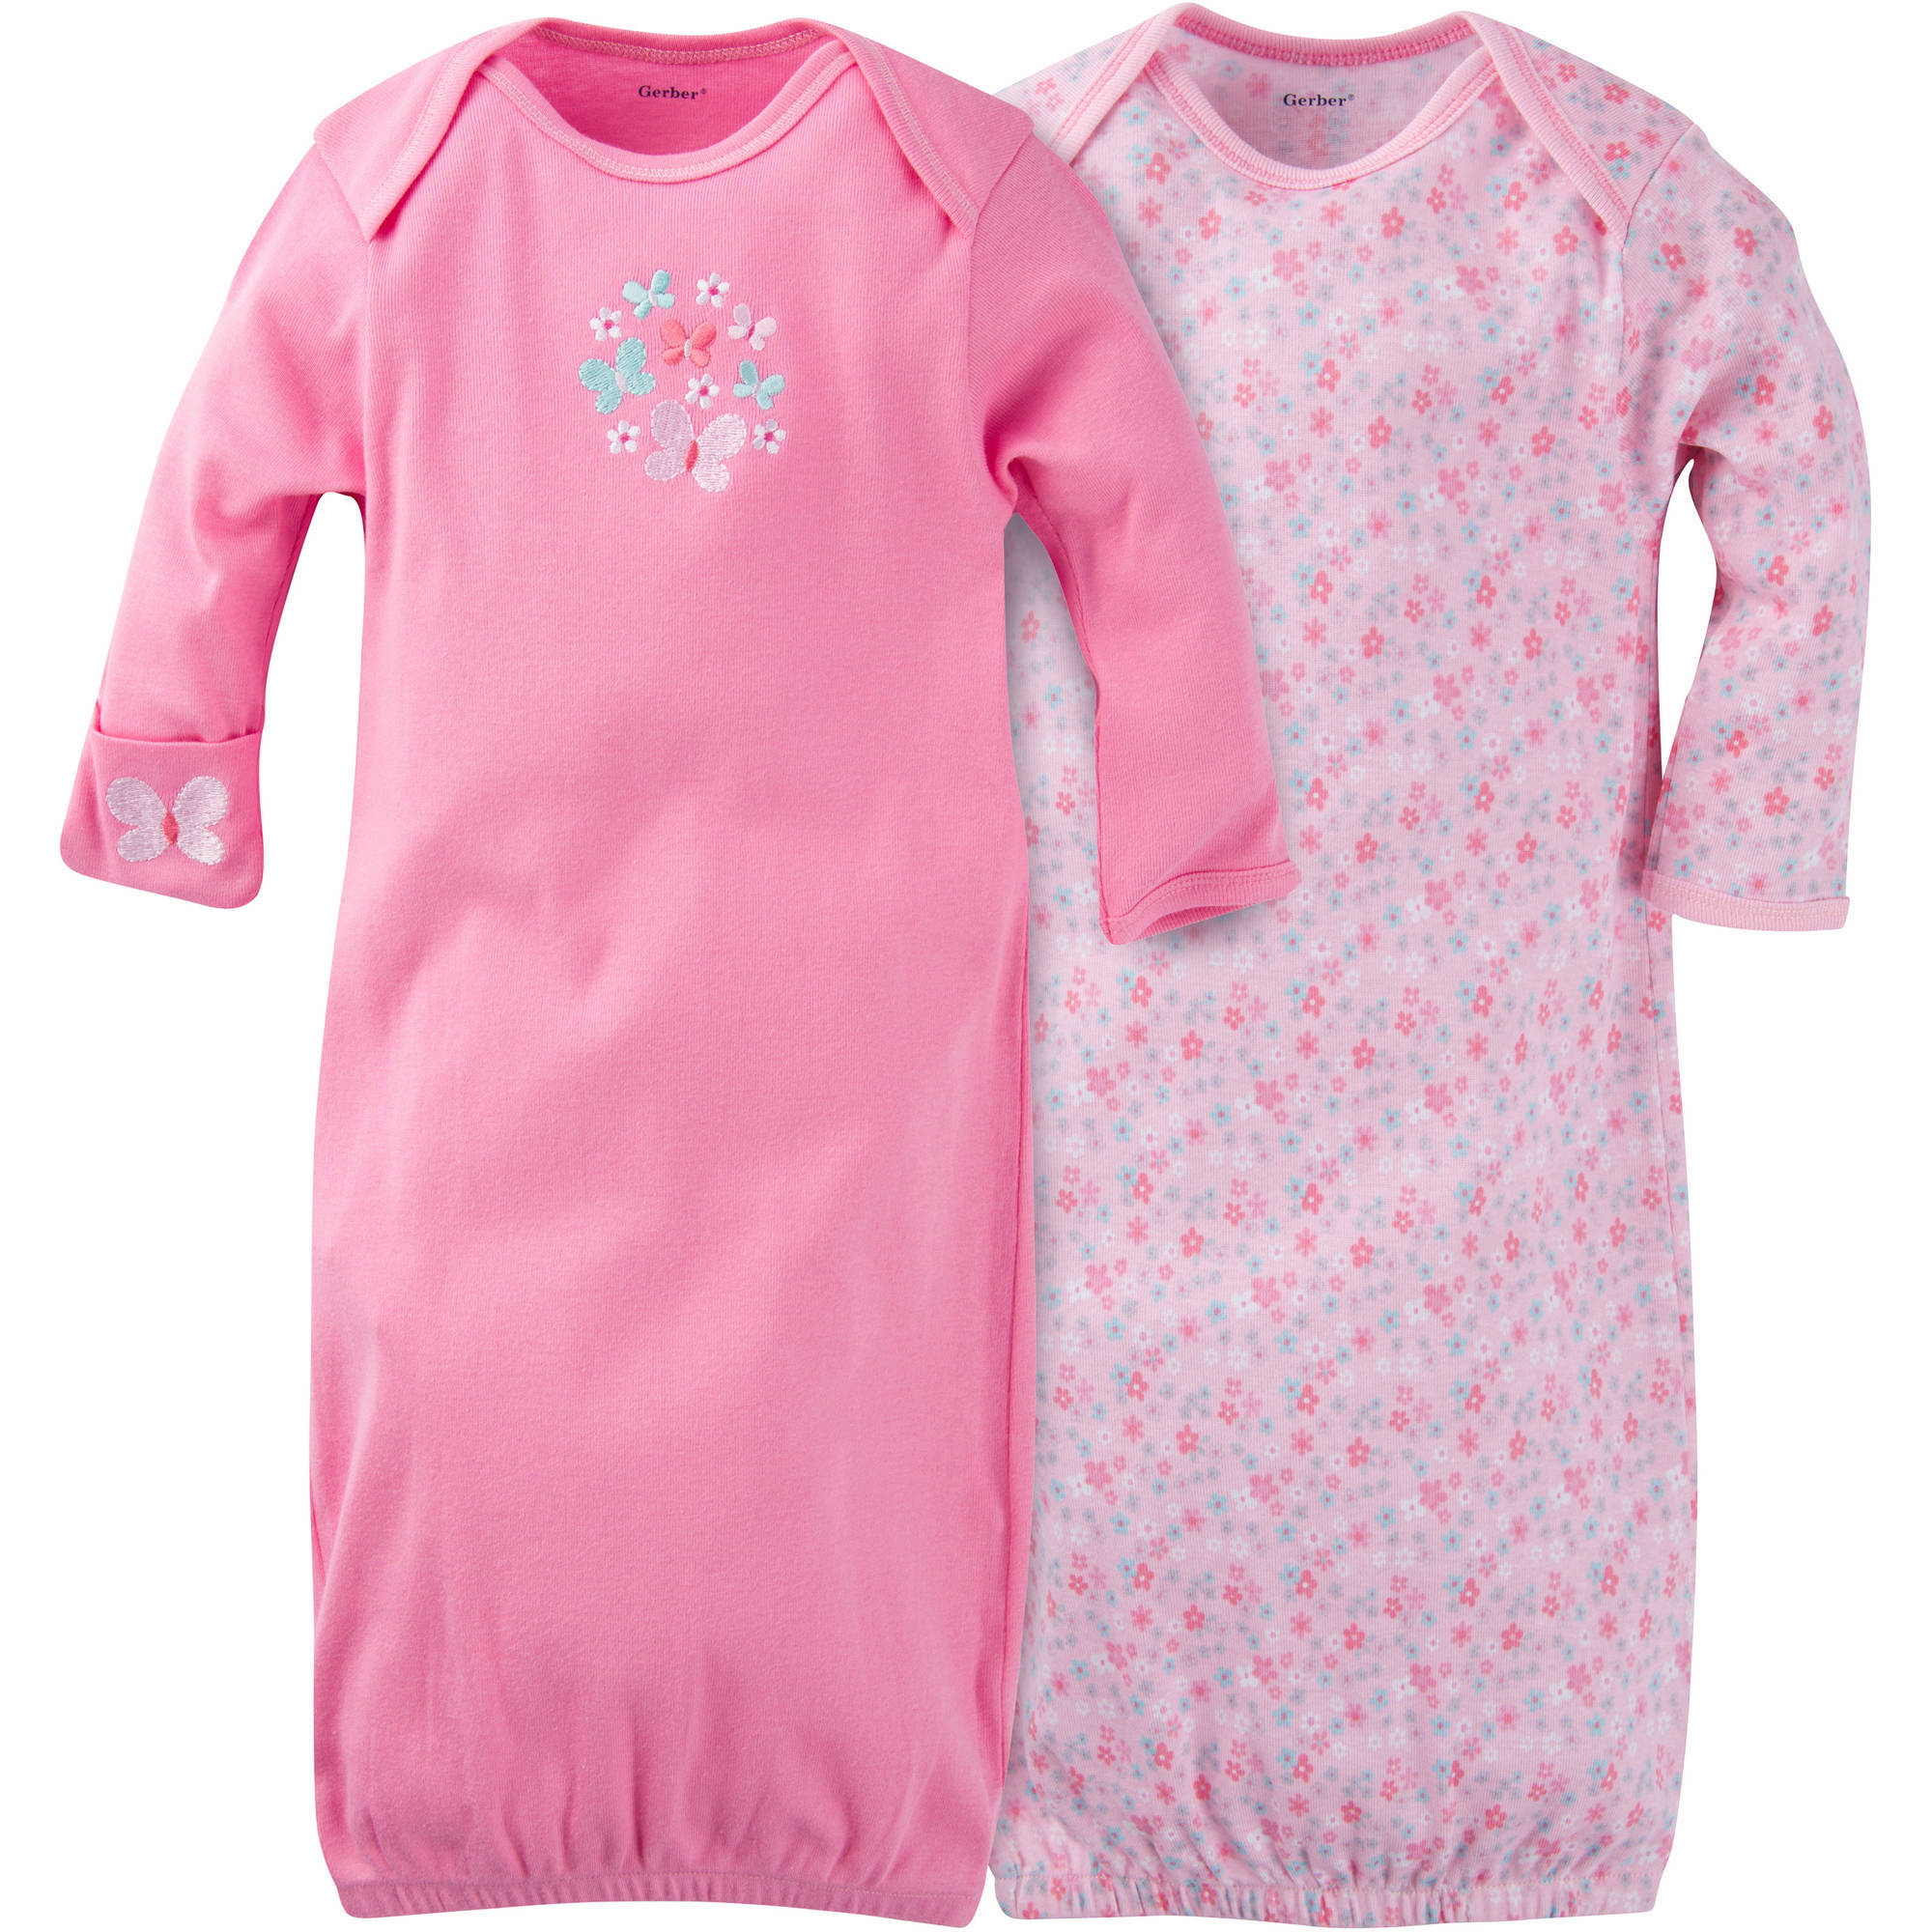 Gerber Newborn Baby Girl Lap Shoulder Gowns, 2-Pack